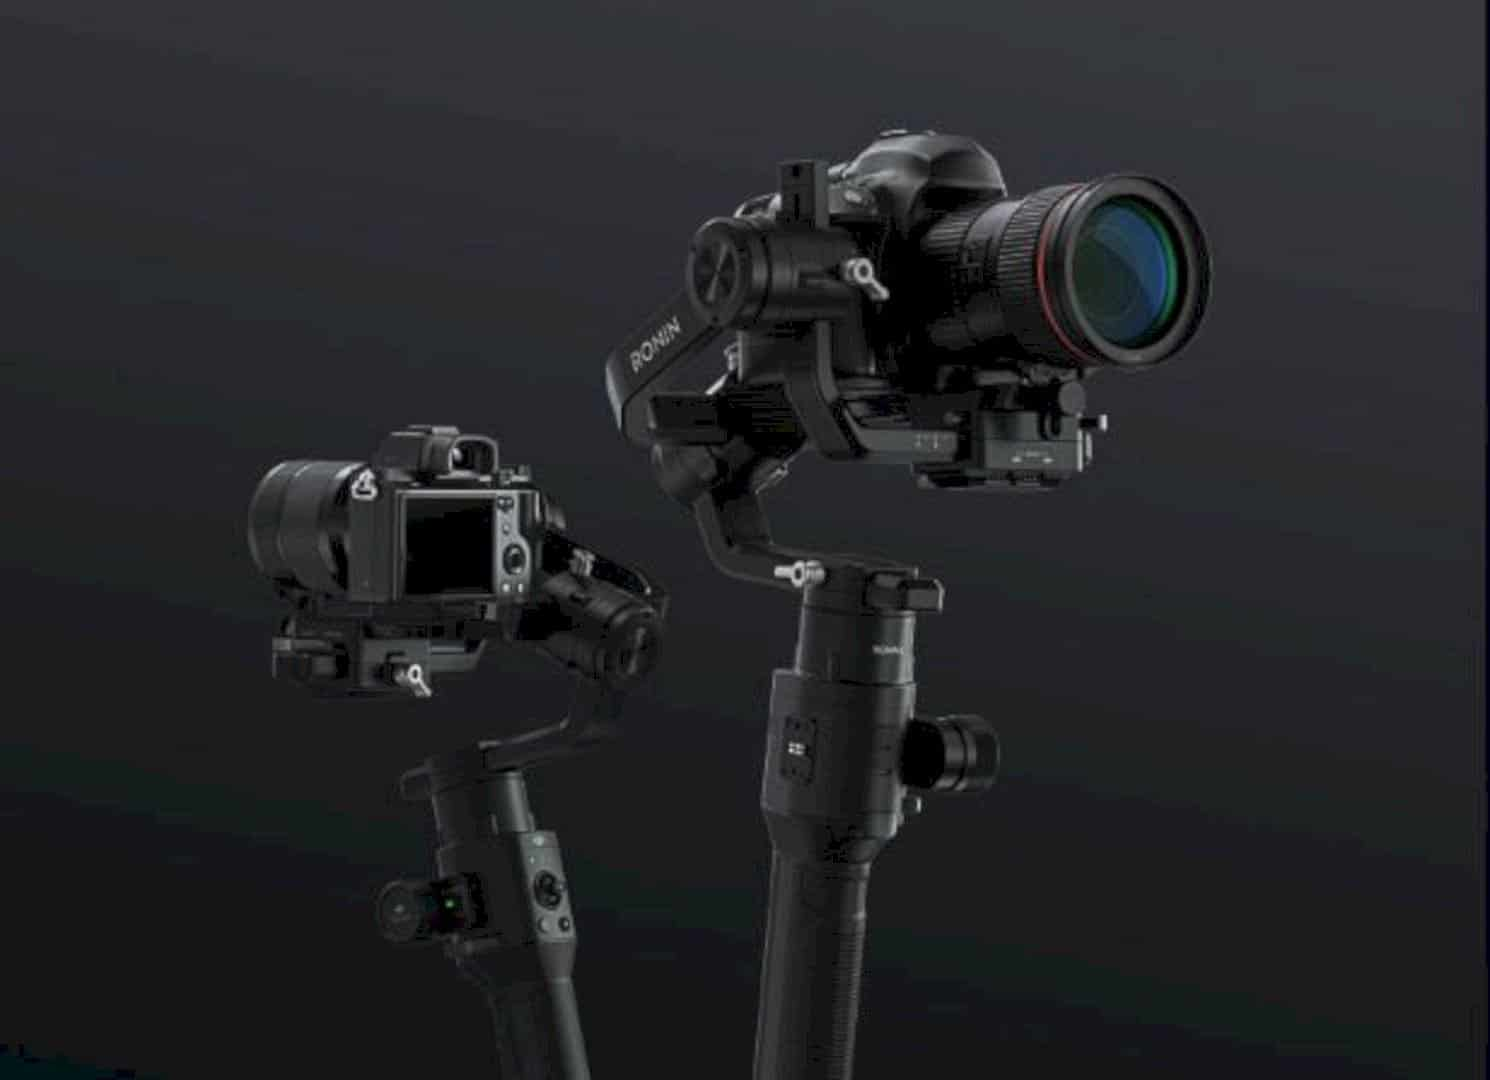 Ronin-S: A New Way to Shoot Smoothly on the Move